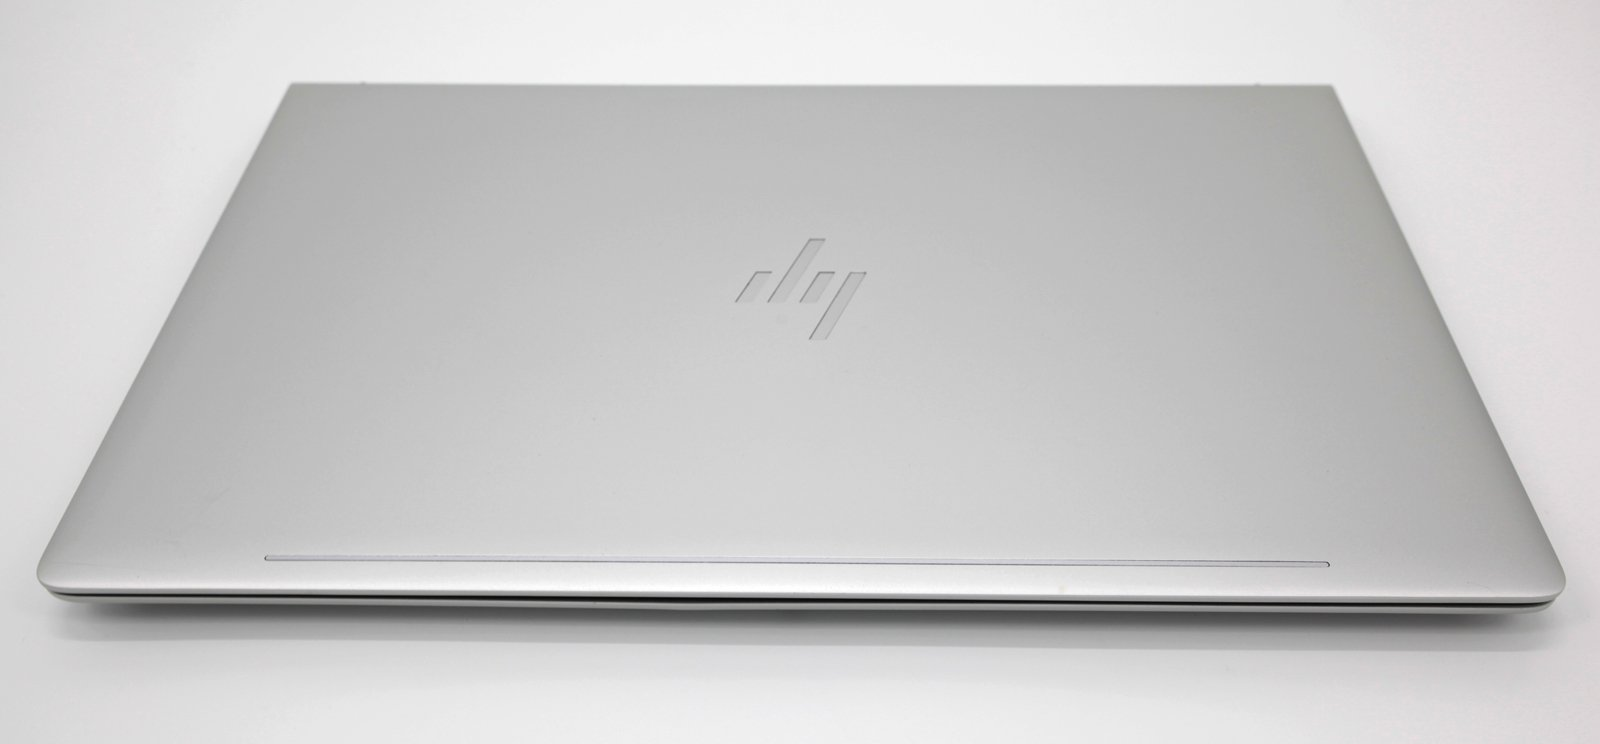 HP Envy 17 4K Laptop: Core i7-8550U, MX150, 16GB RAM, 256GB + 1TB HDD - CruiseTech